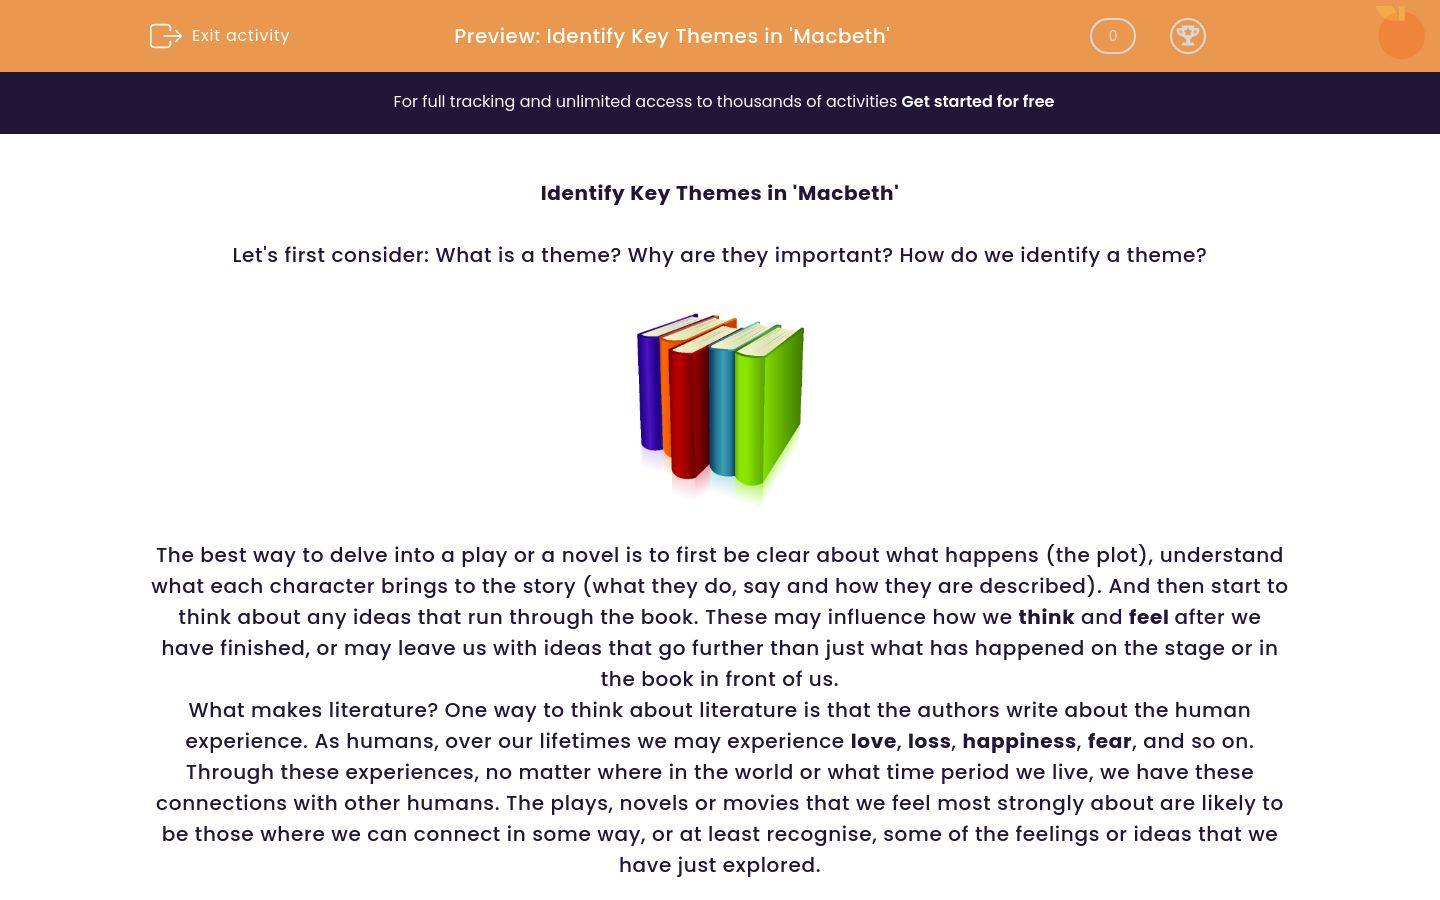 'Identify Key Themes in 'Macbeth'' worksheet